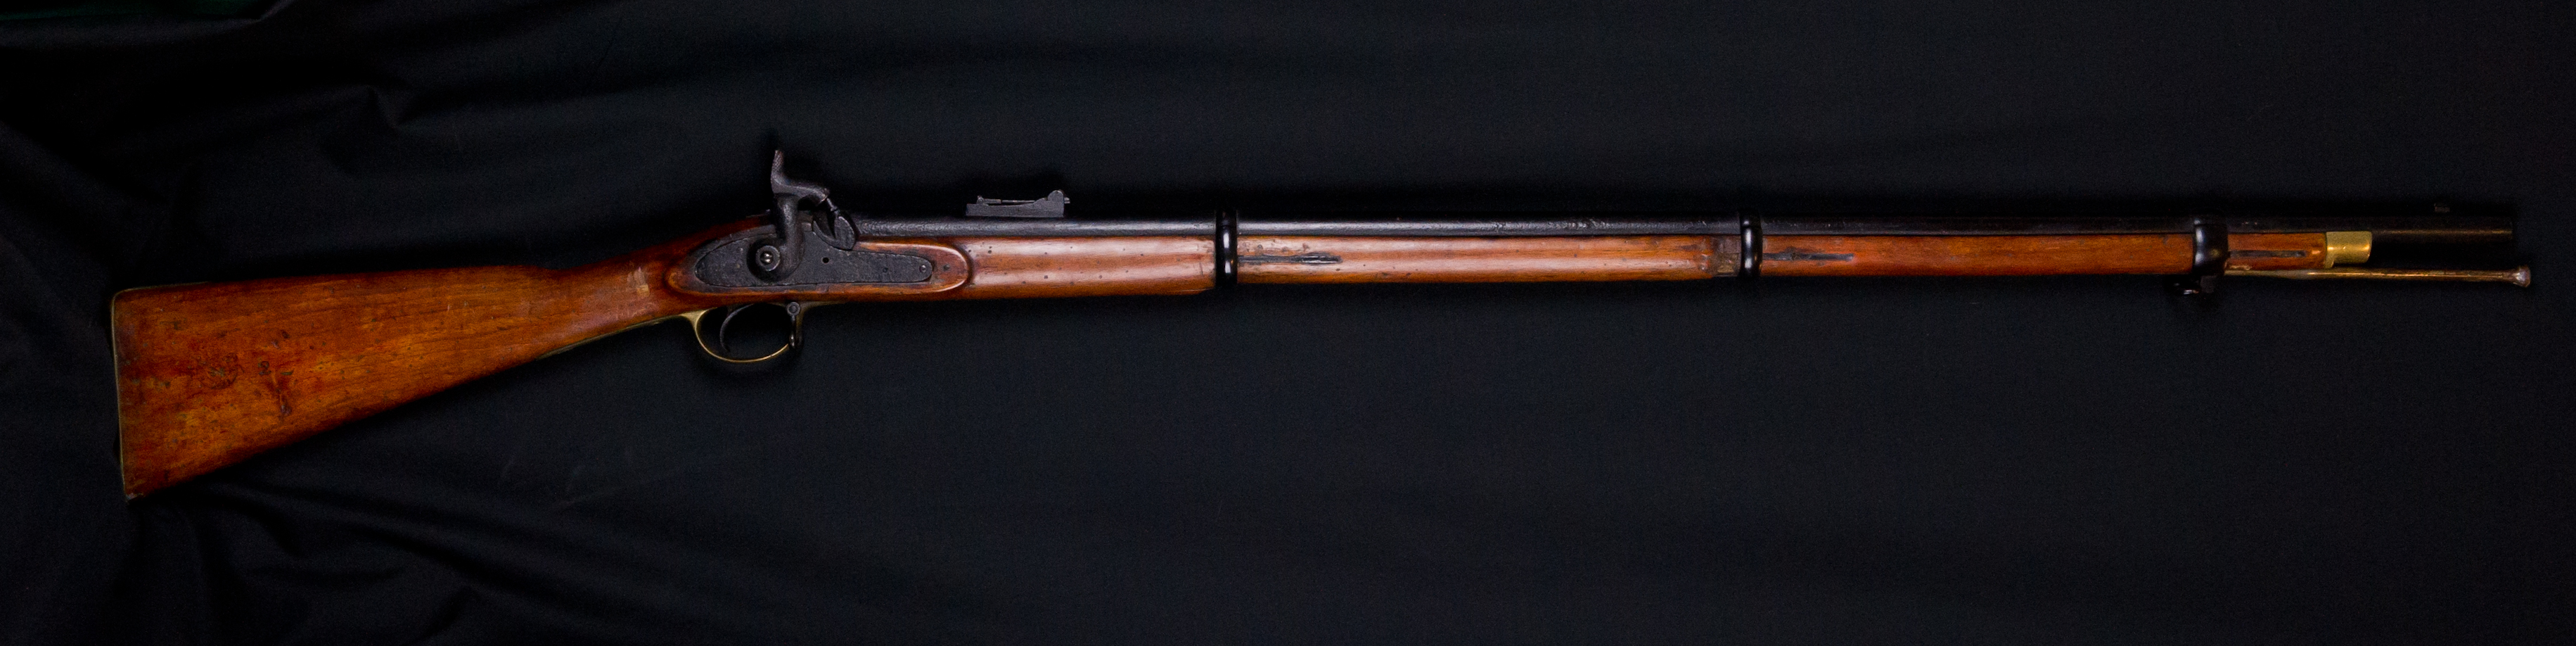 An example of the Pattern 1853 Enfield rifled musket which is on display at Cornwall's Regimental Museum